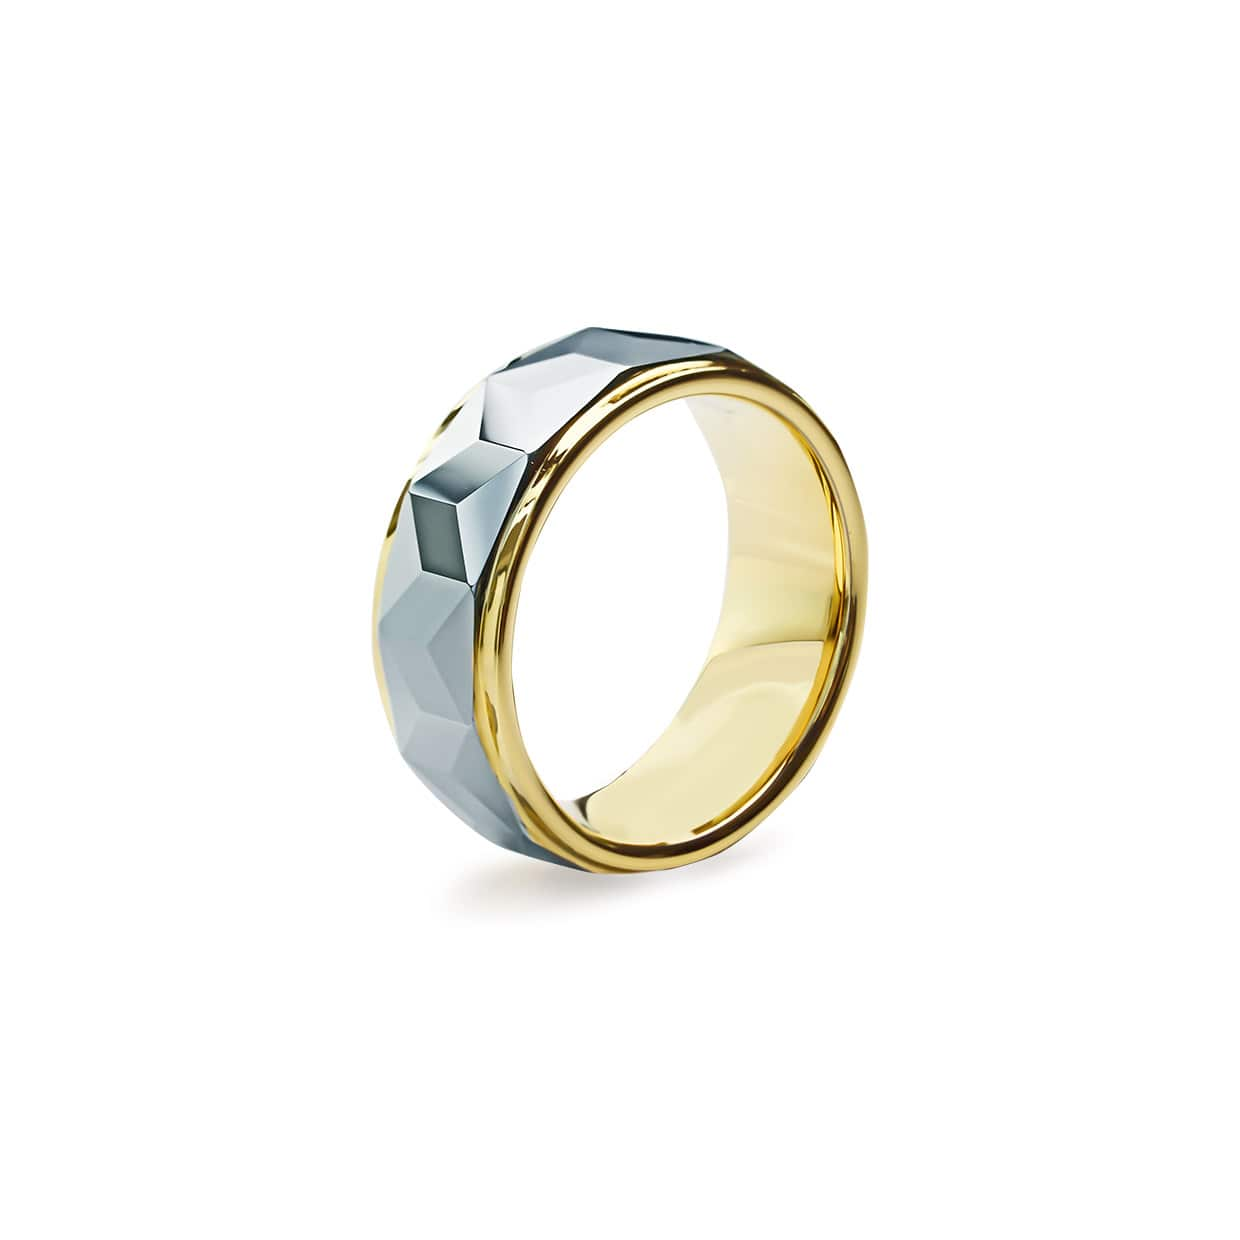 Tungsten Ring Grey & Golden - Abelstedt